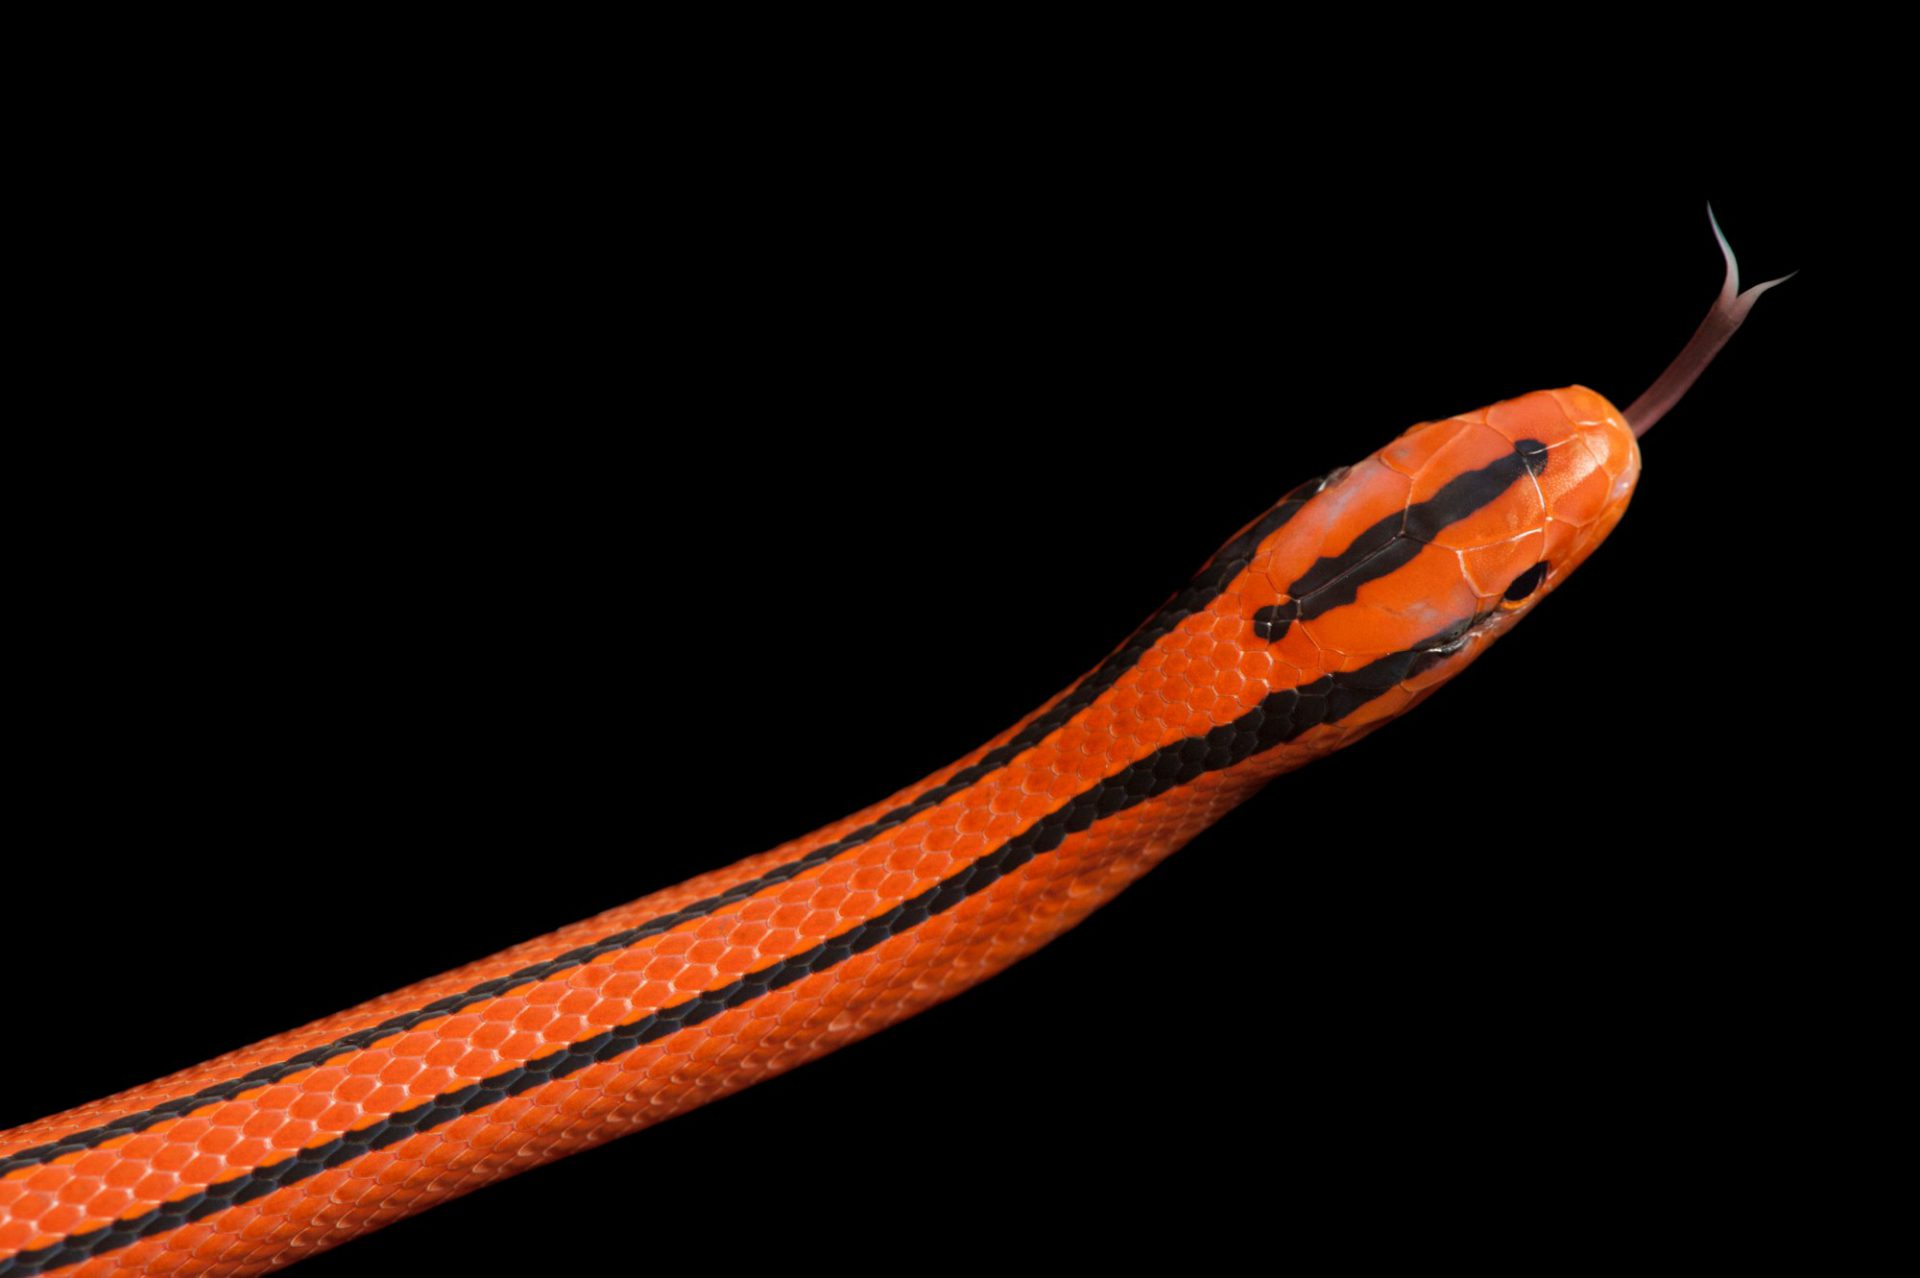 Photo: A Thai bamboo rat snake (Elaphe porphyracea coxi) at Miller Park Zoo.